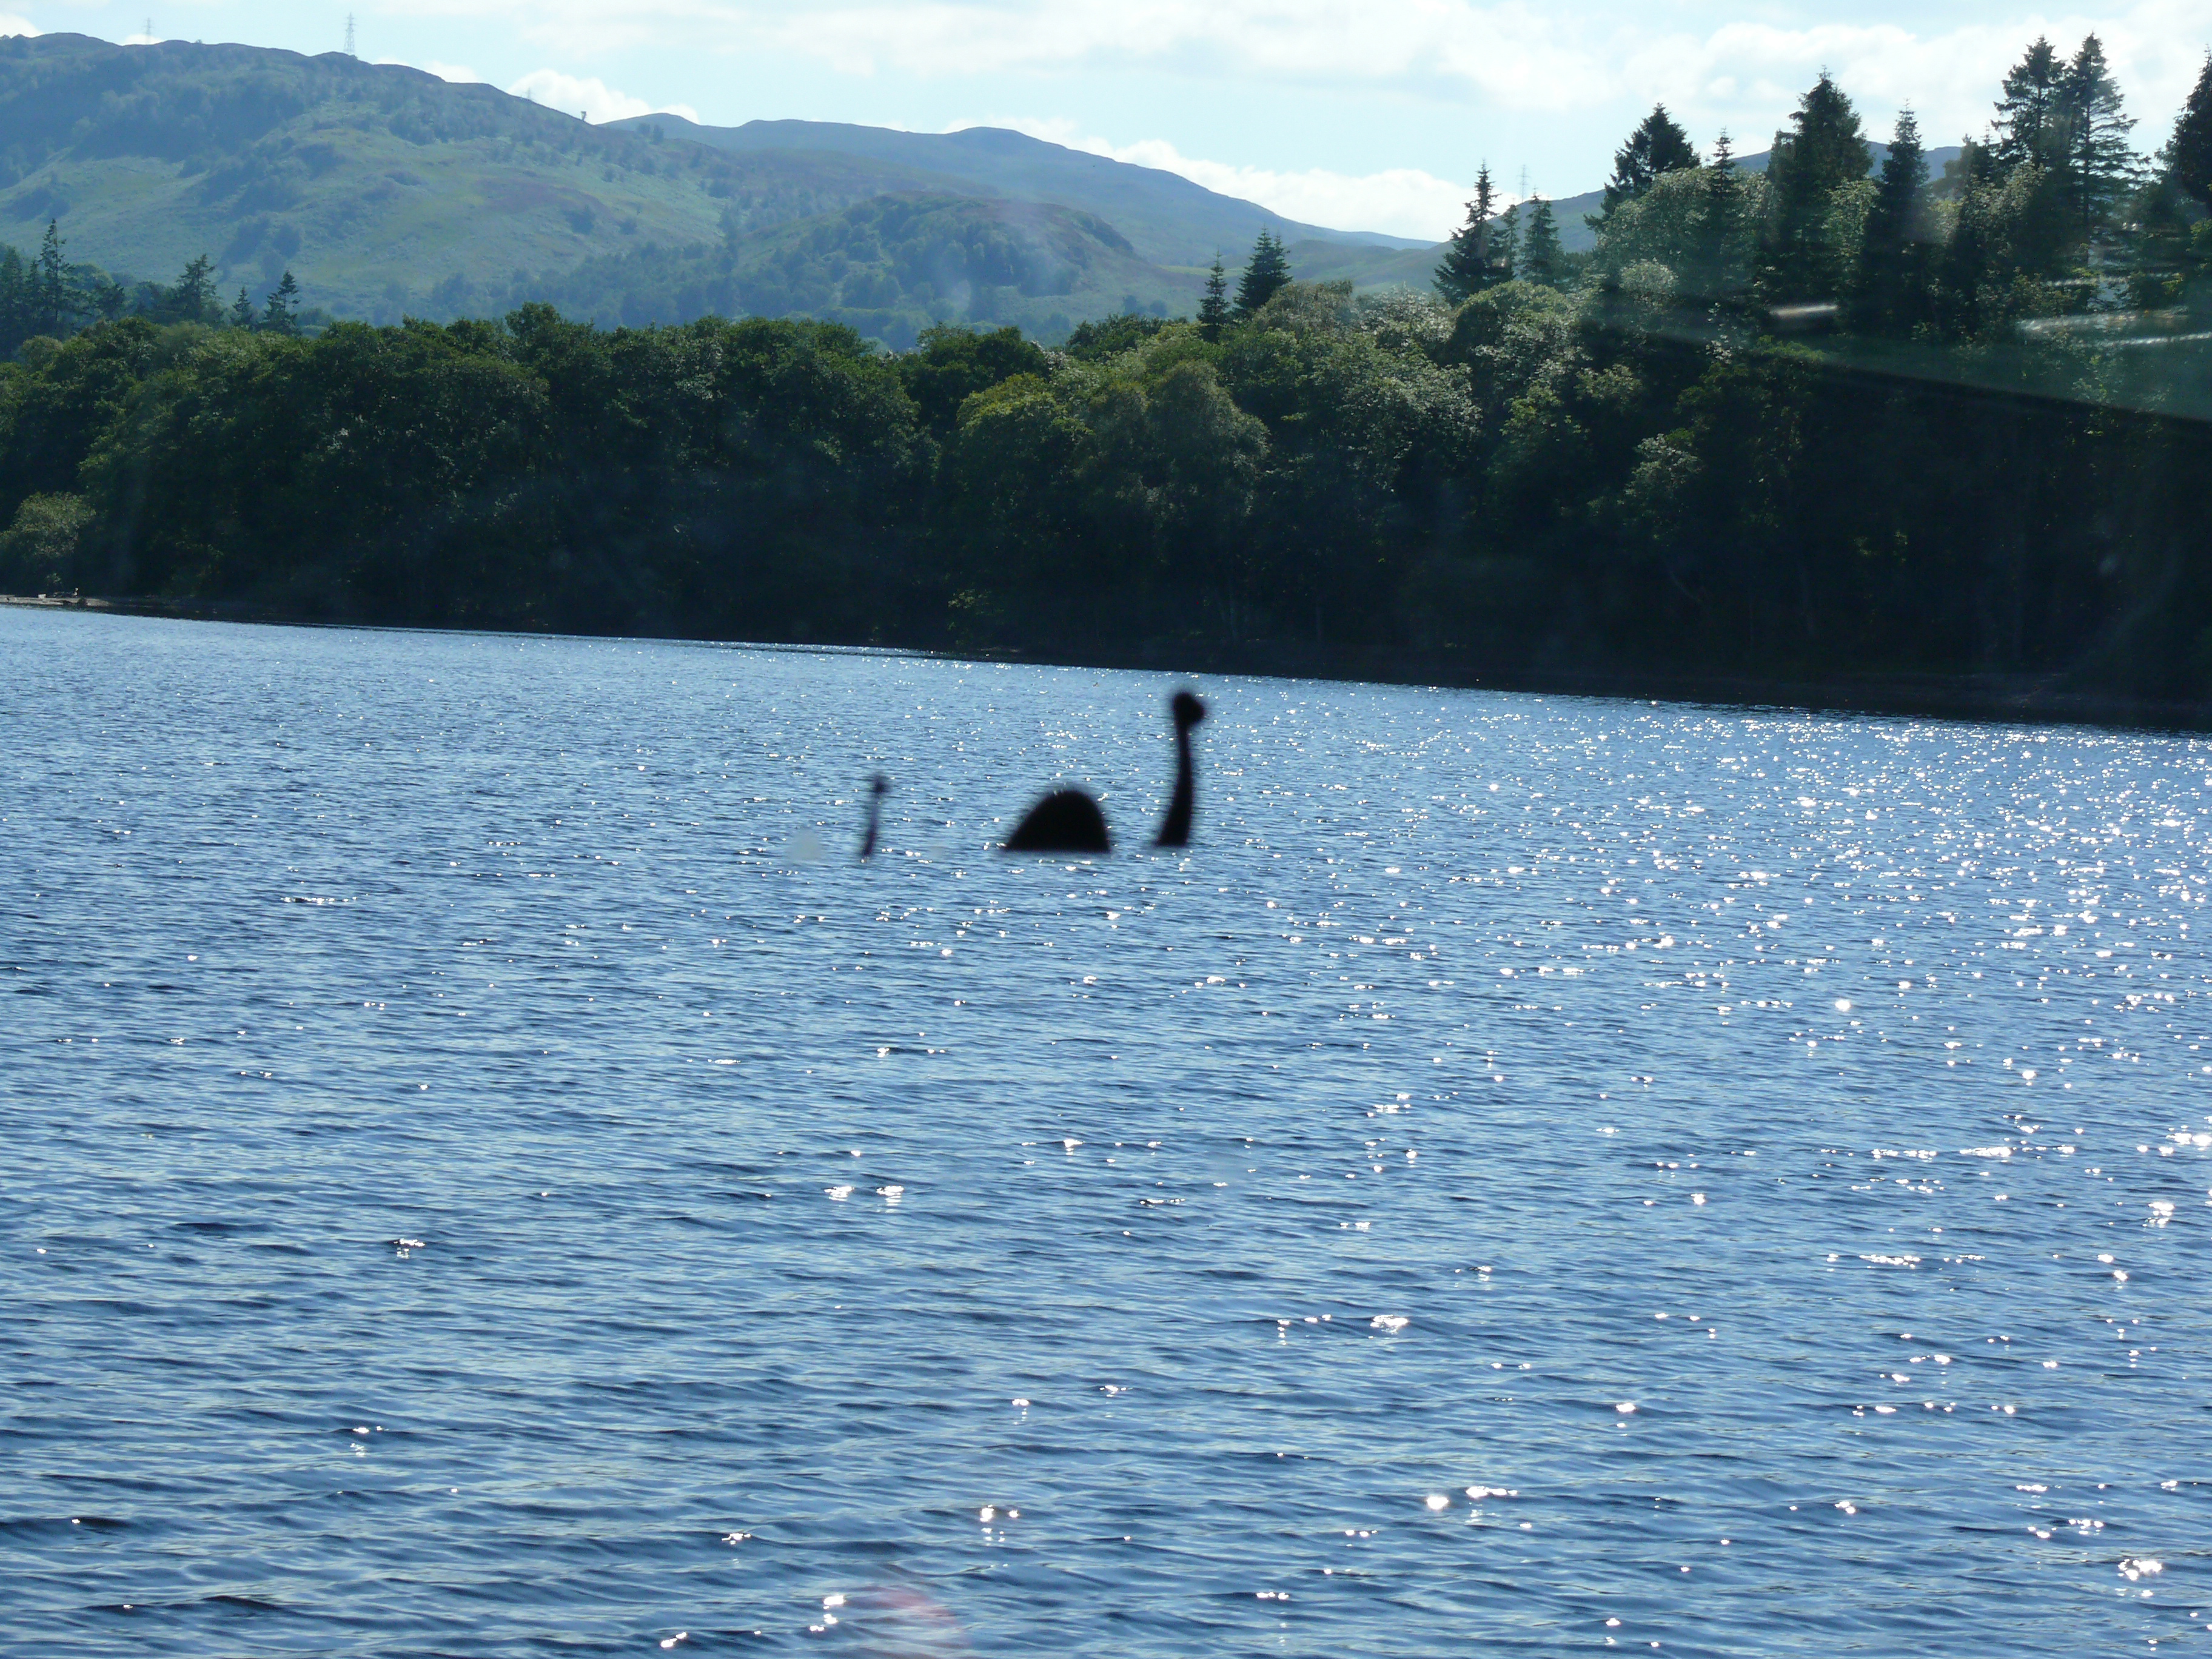 Scientists Have Finally Discovered An Explanation For Loch Ness Monster Through DNA Samples